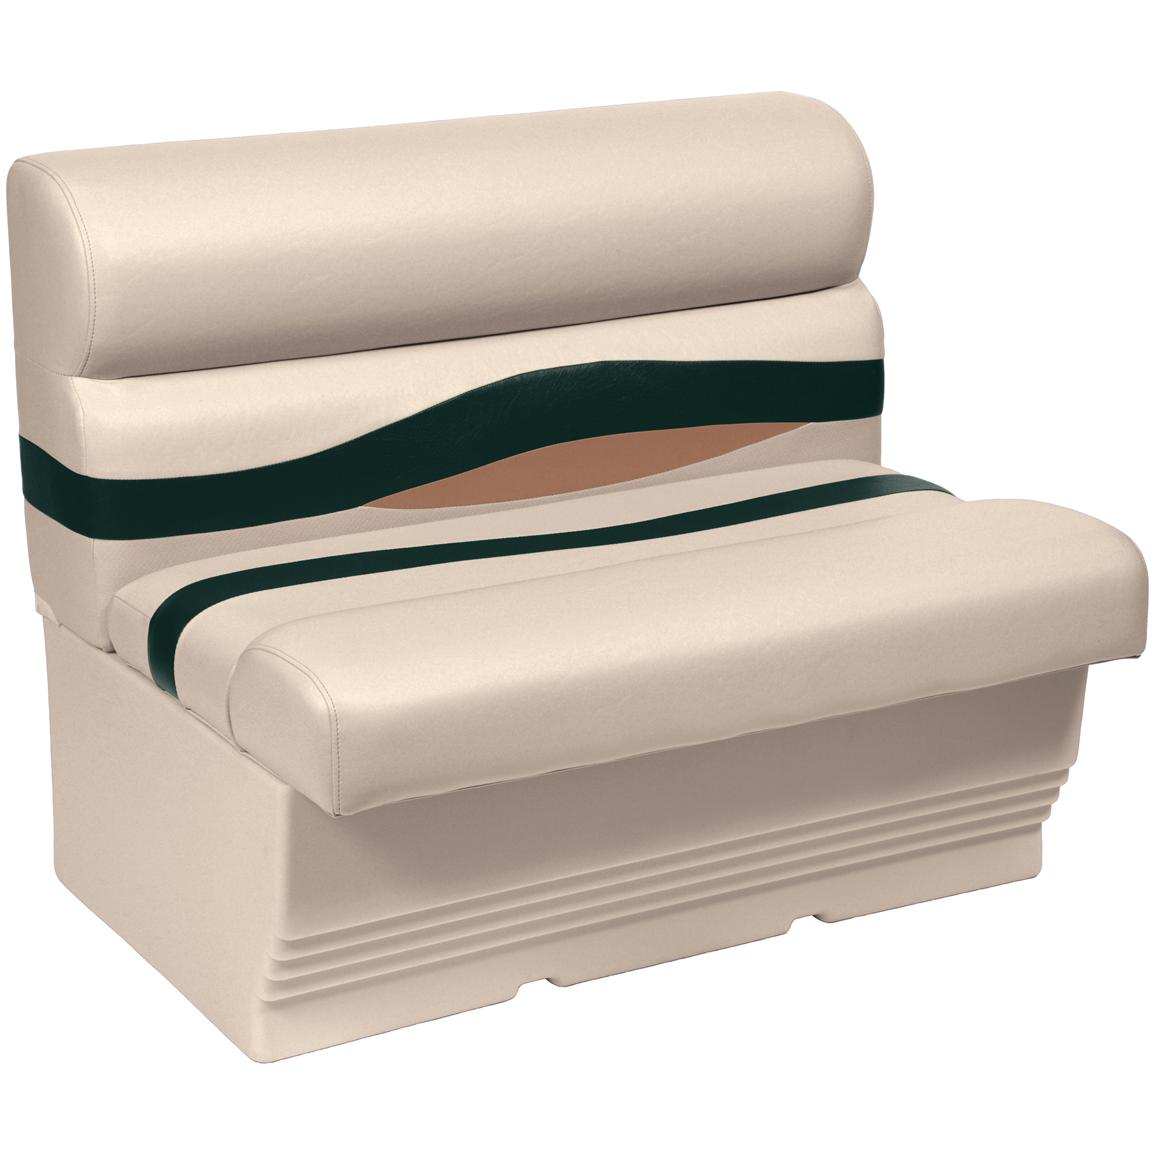 Wise® Premier 1100 Series 36 inch Pontoon Bench Seat, Color B